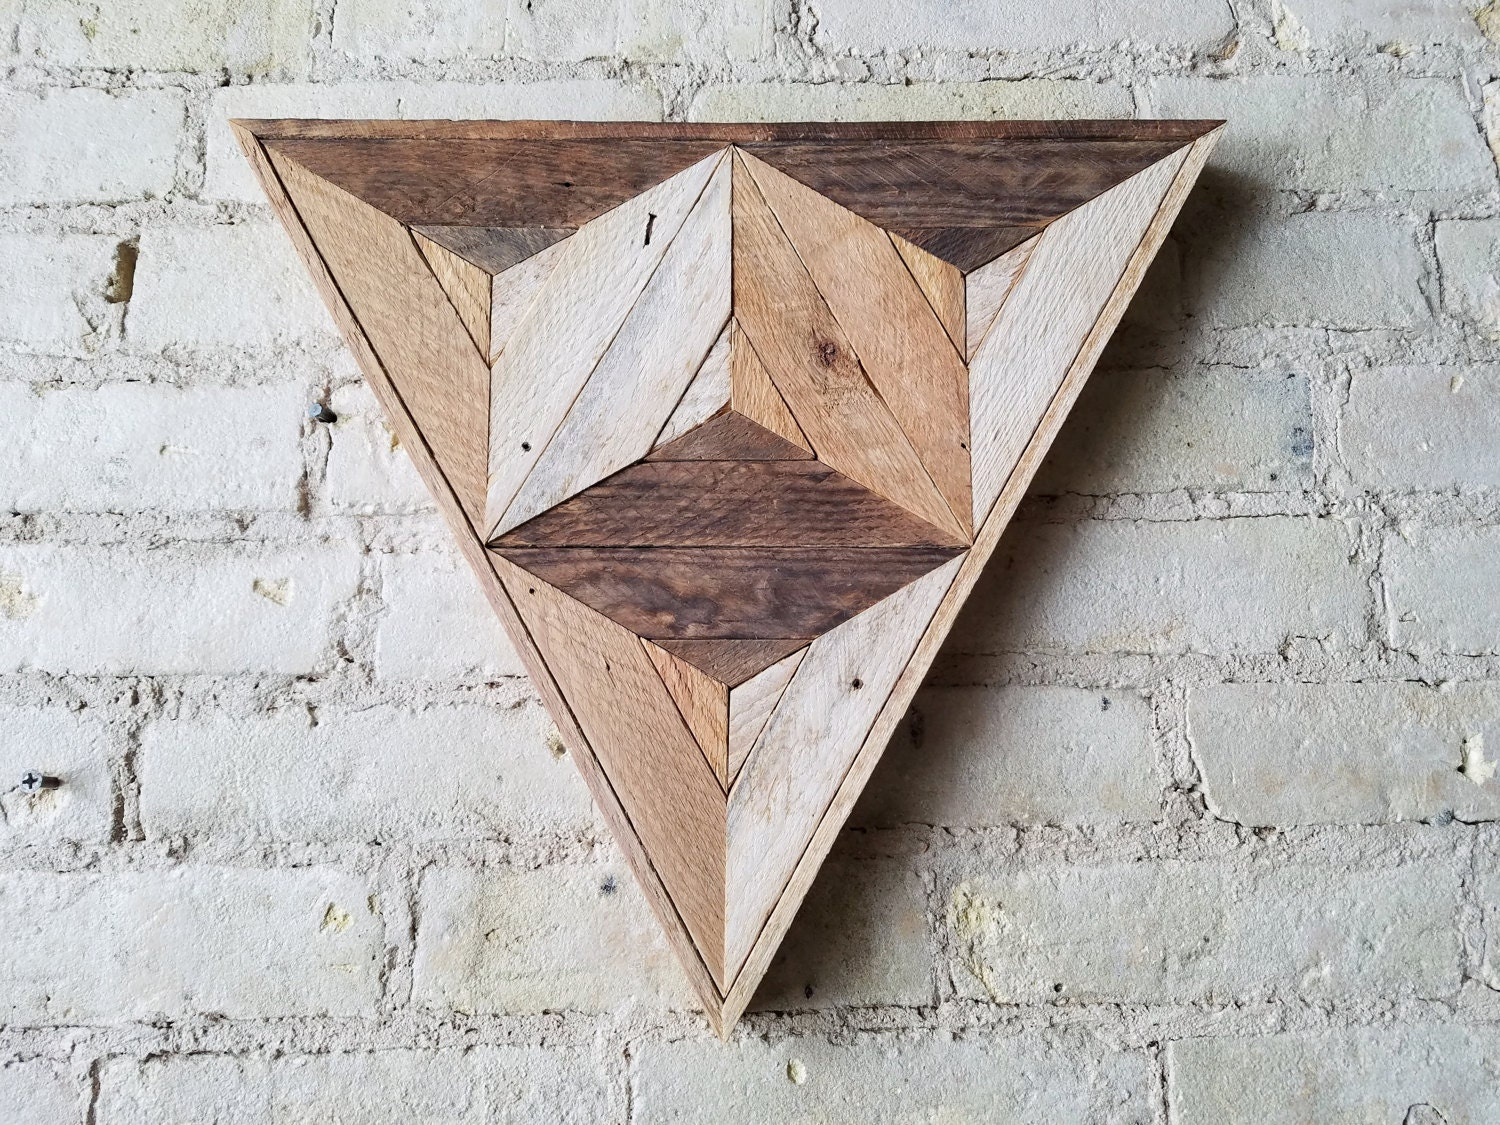 Reclaimed wood wall art wood decor reclaimed wood for Wood wall art